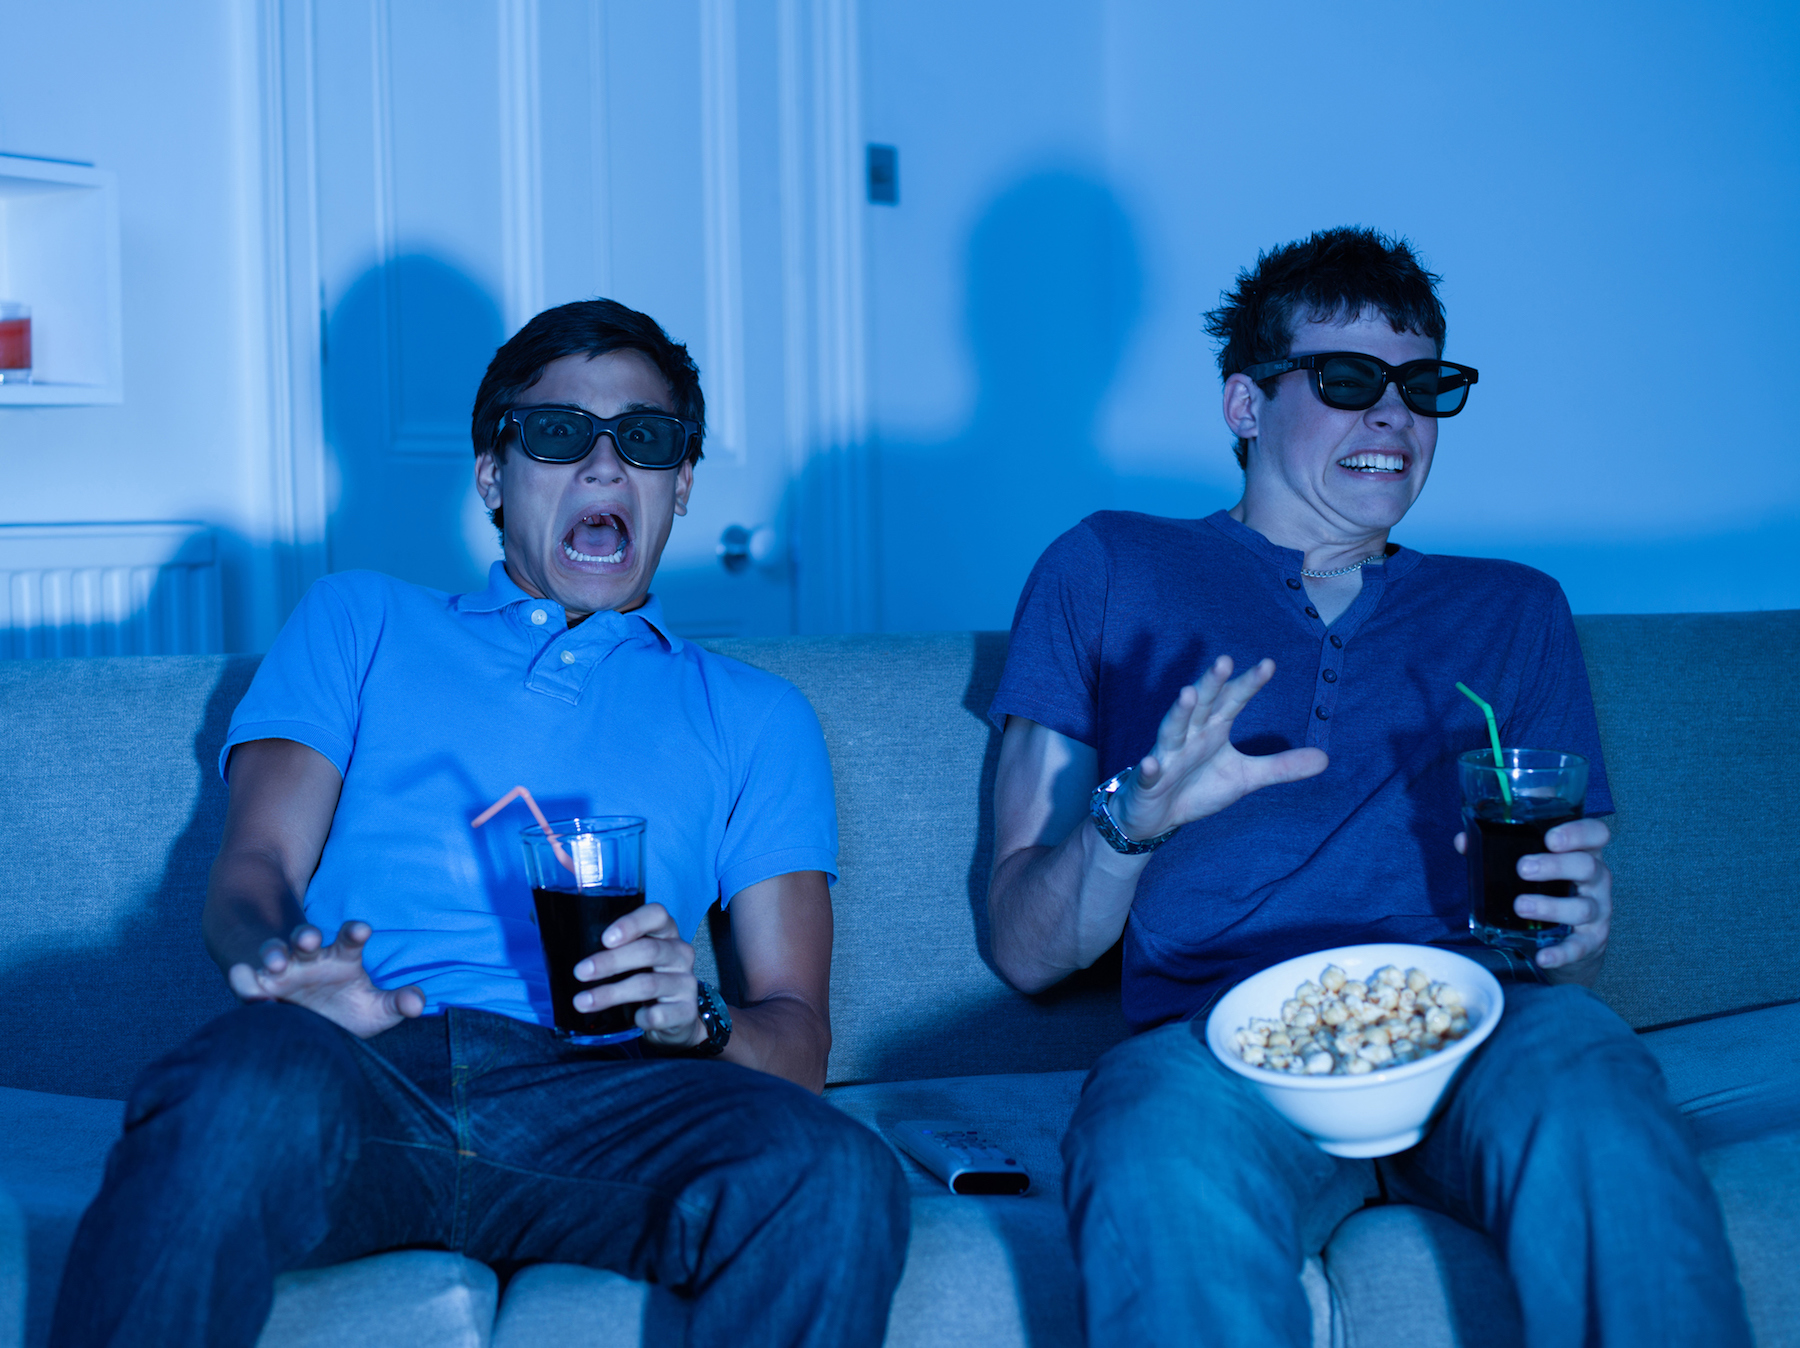 Teen boys watching movie in sunglasses